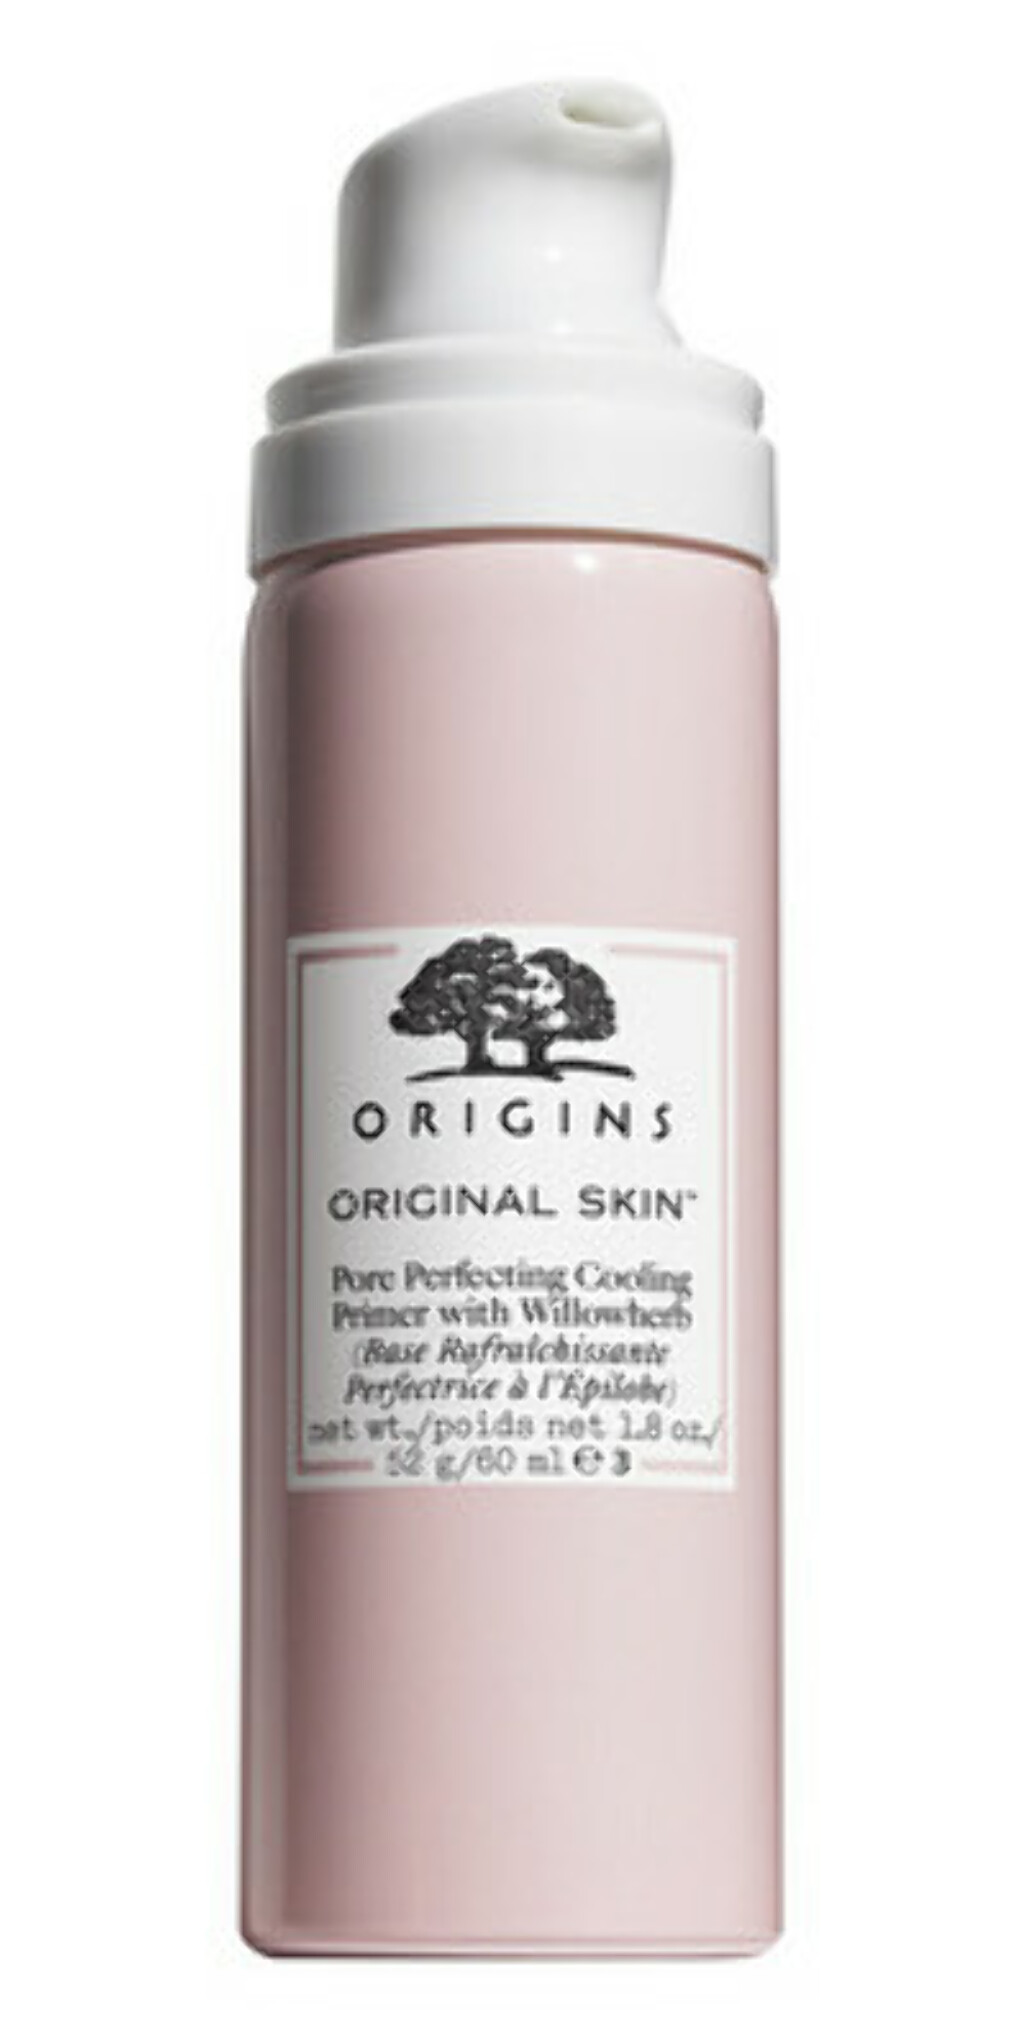 Origins Original Skin Pure Perfecting Cooling Primer With Willowherb